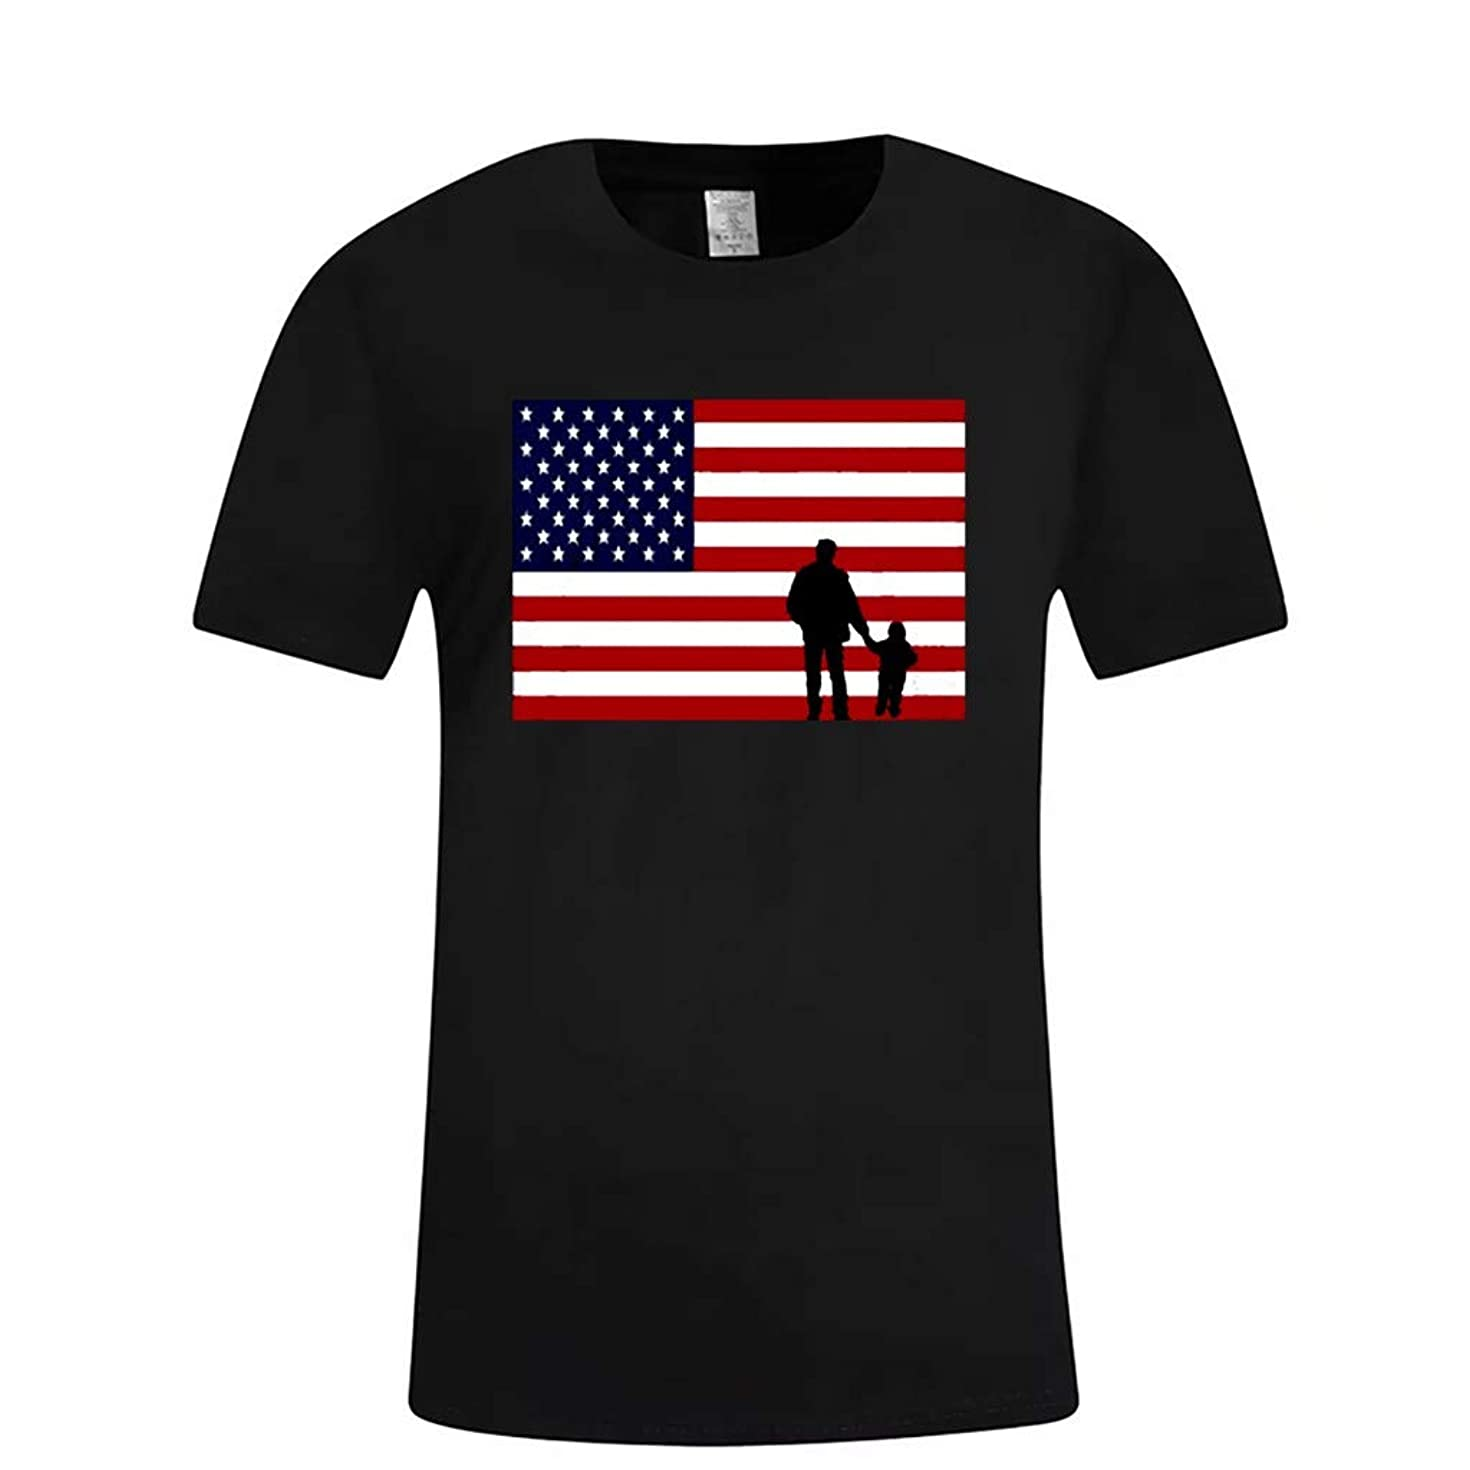 Kinglly Fashion 4th of July T-Shirt Men's Short Sleeve USA Flag Fit Comfortable Casual Slim T-Shirt Sport Top Blouse